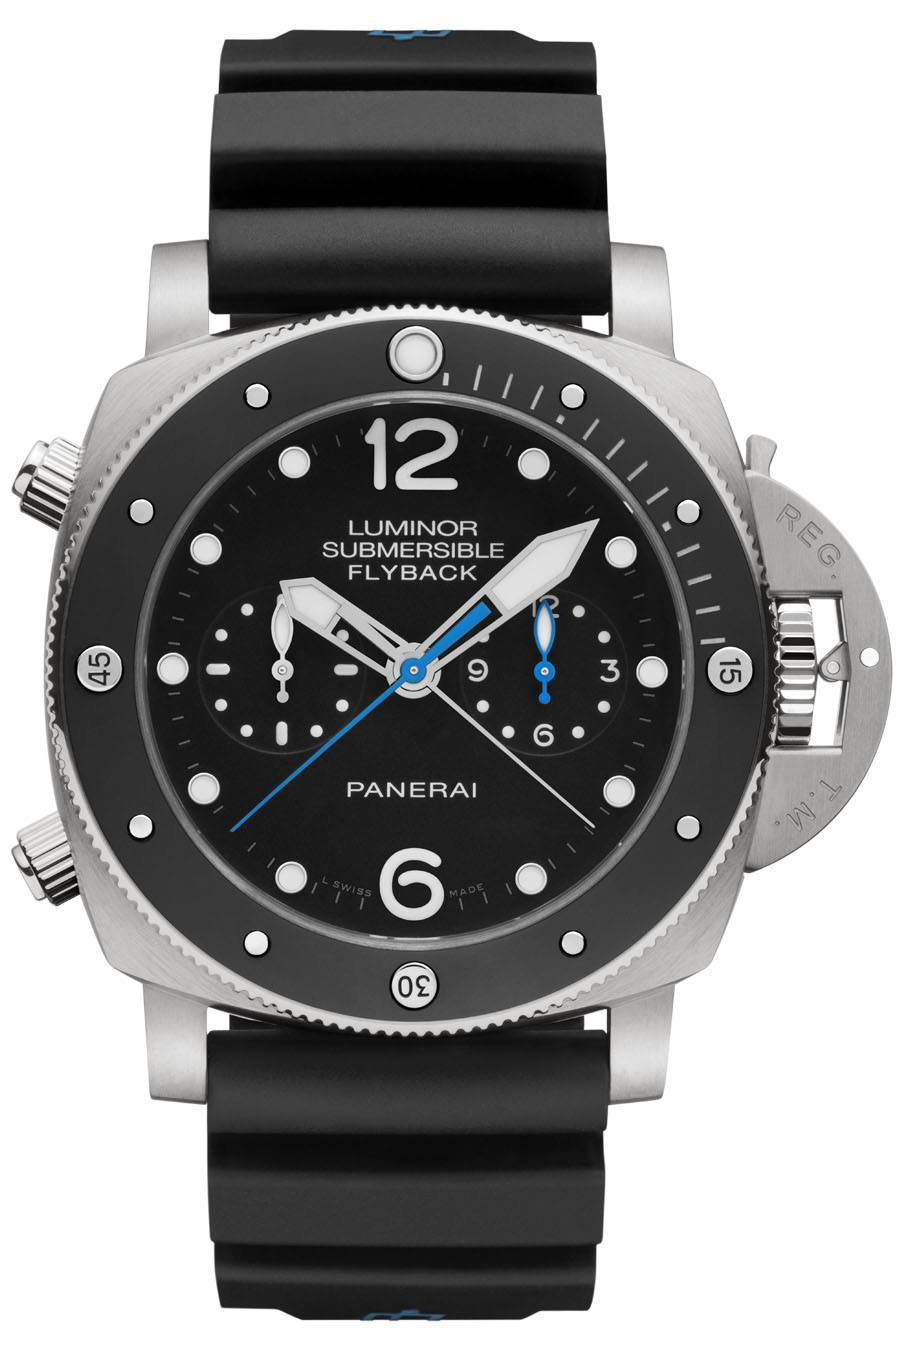 Panerai: Luminor Submersible 1950 3 Days Chrono Flyback Automatic Titanio